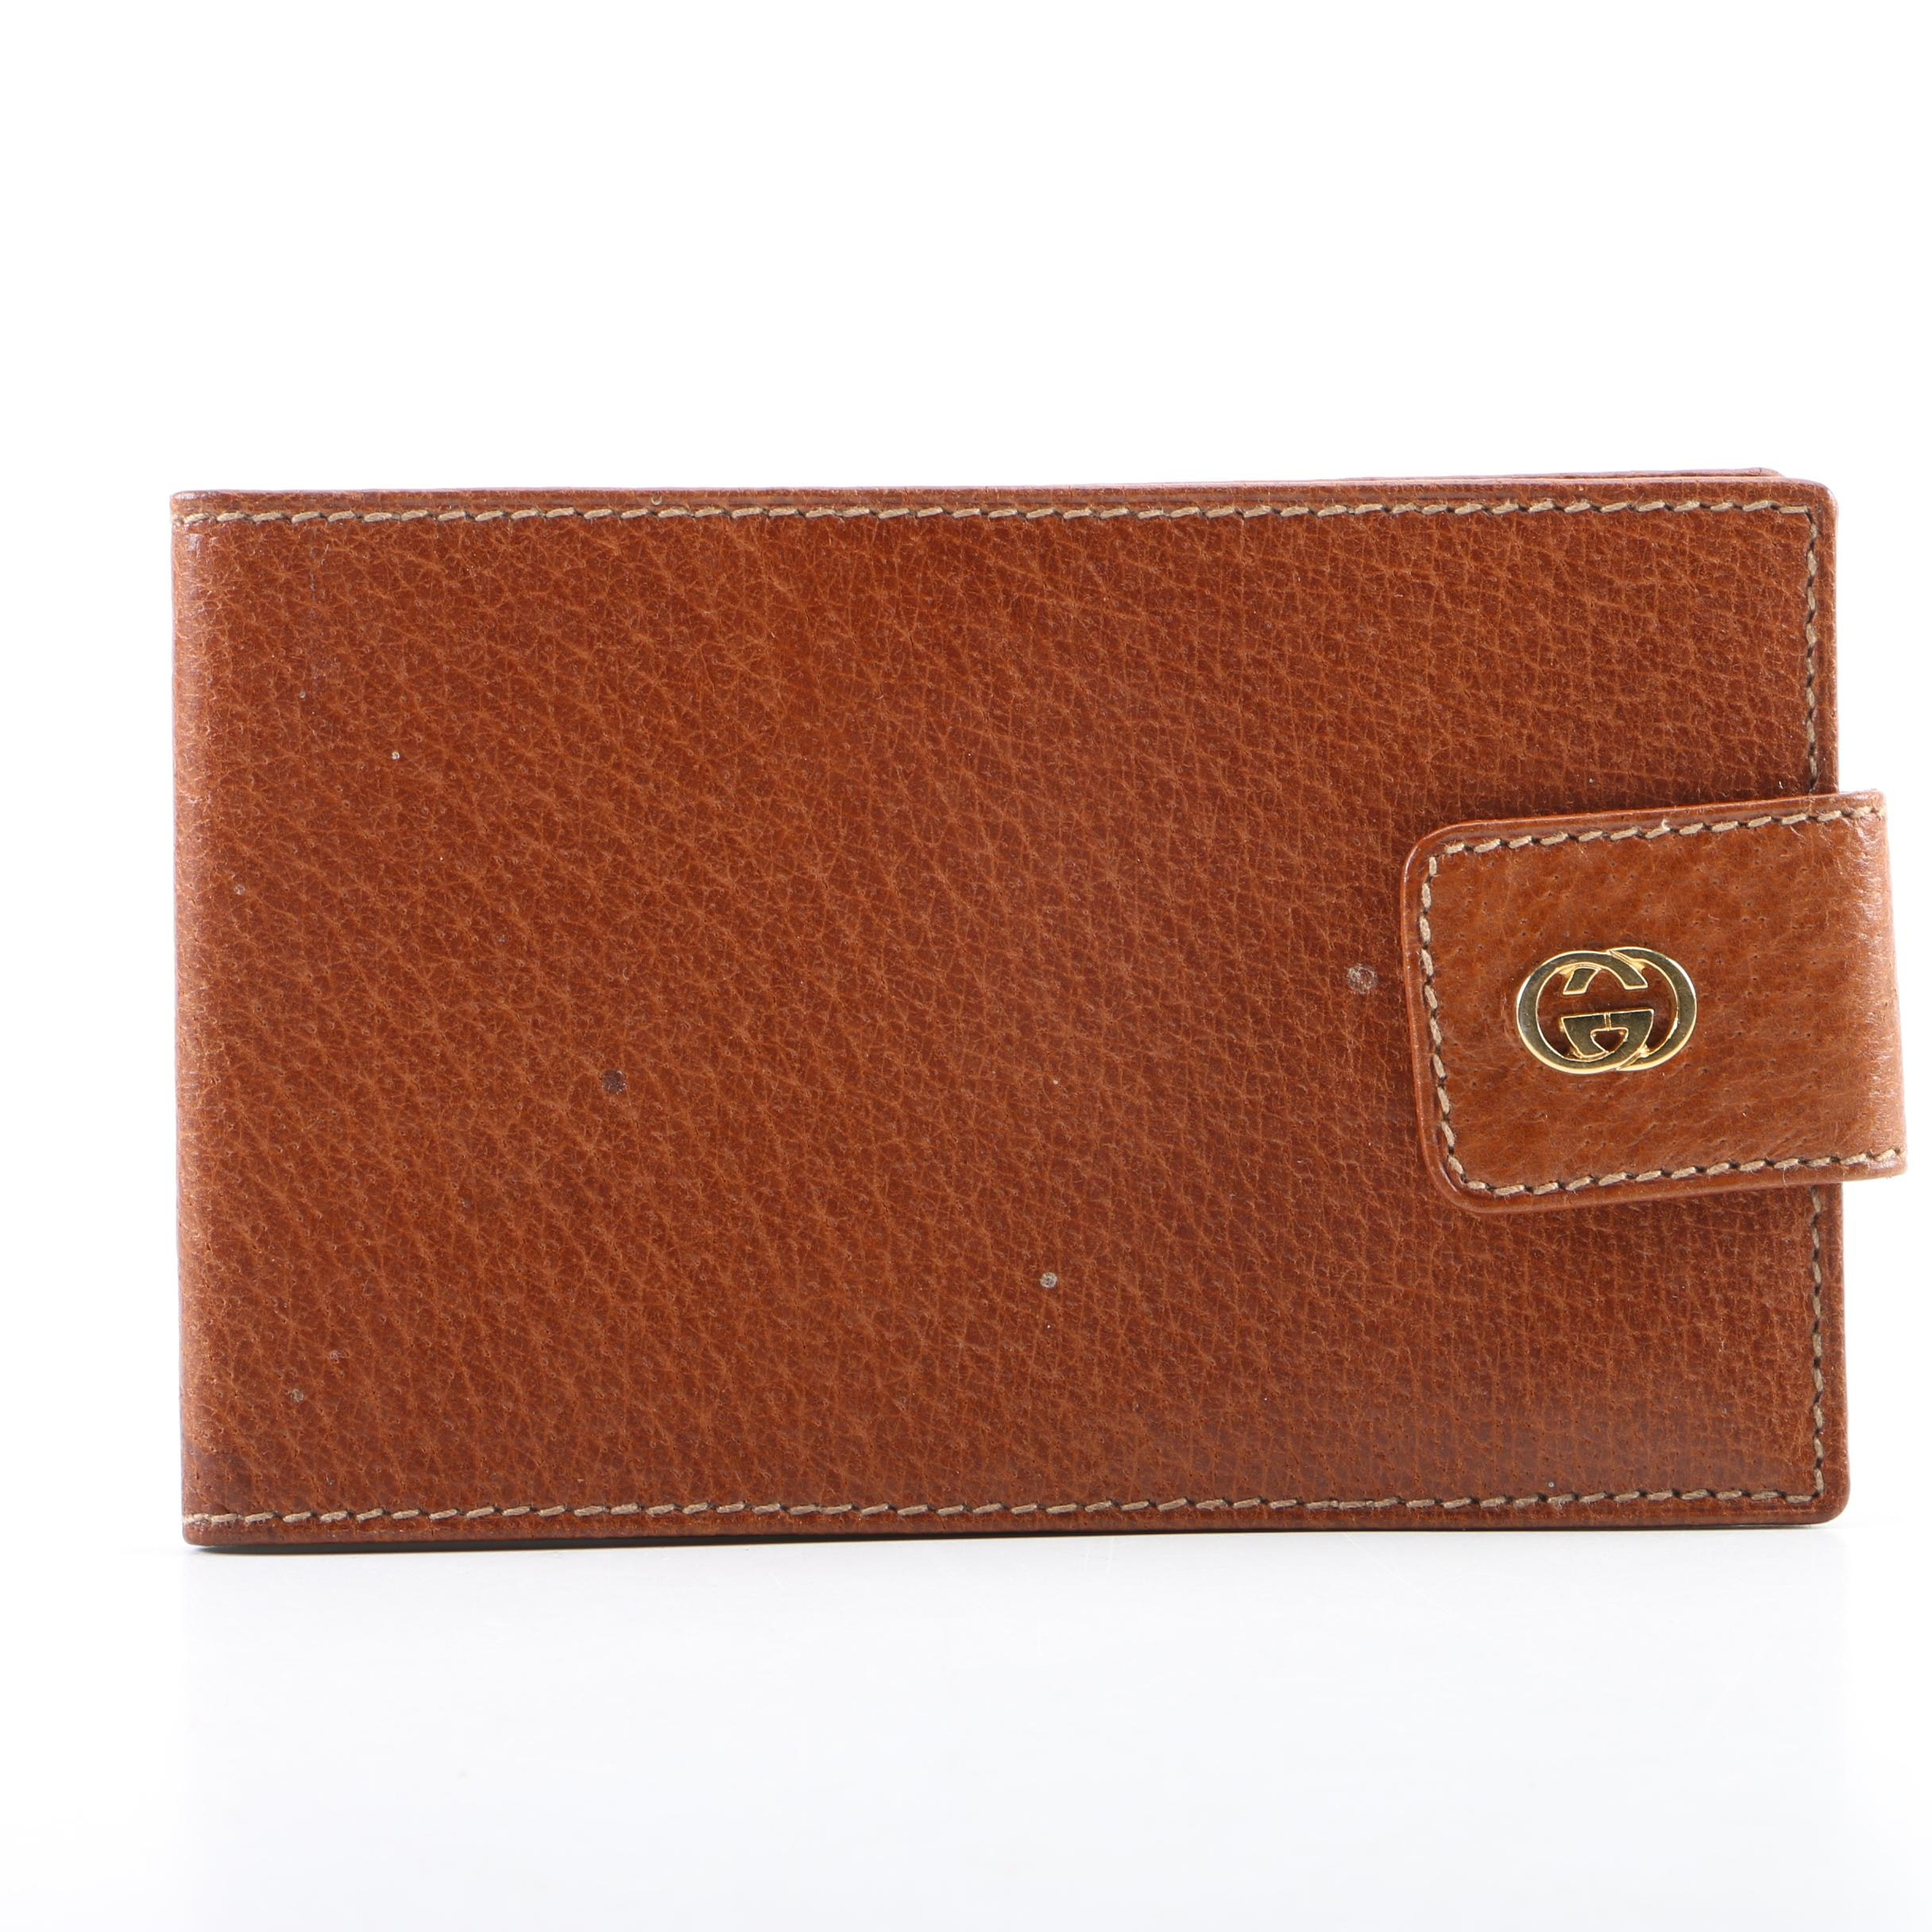 Vintage Gucci Leather Notepad Cover